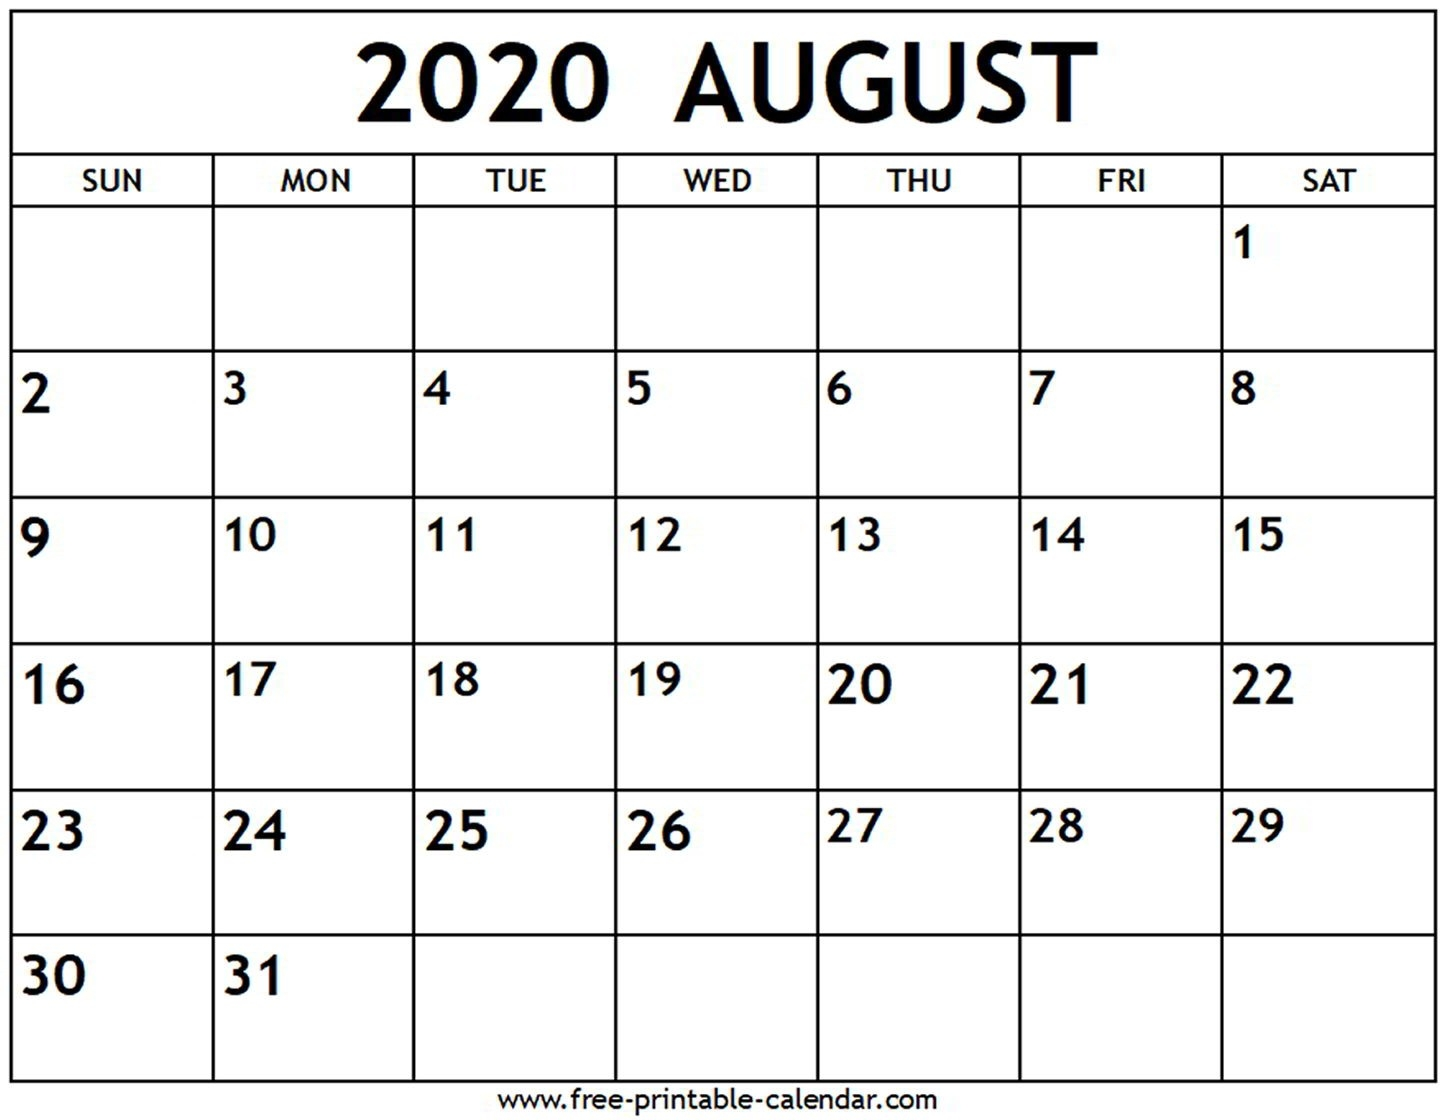 August 2020 Calendar - Free-Printable-Calendar-Blank Calendars June July And August 2020